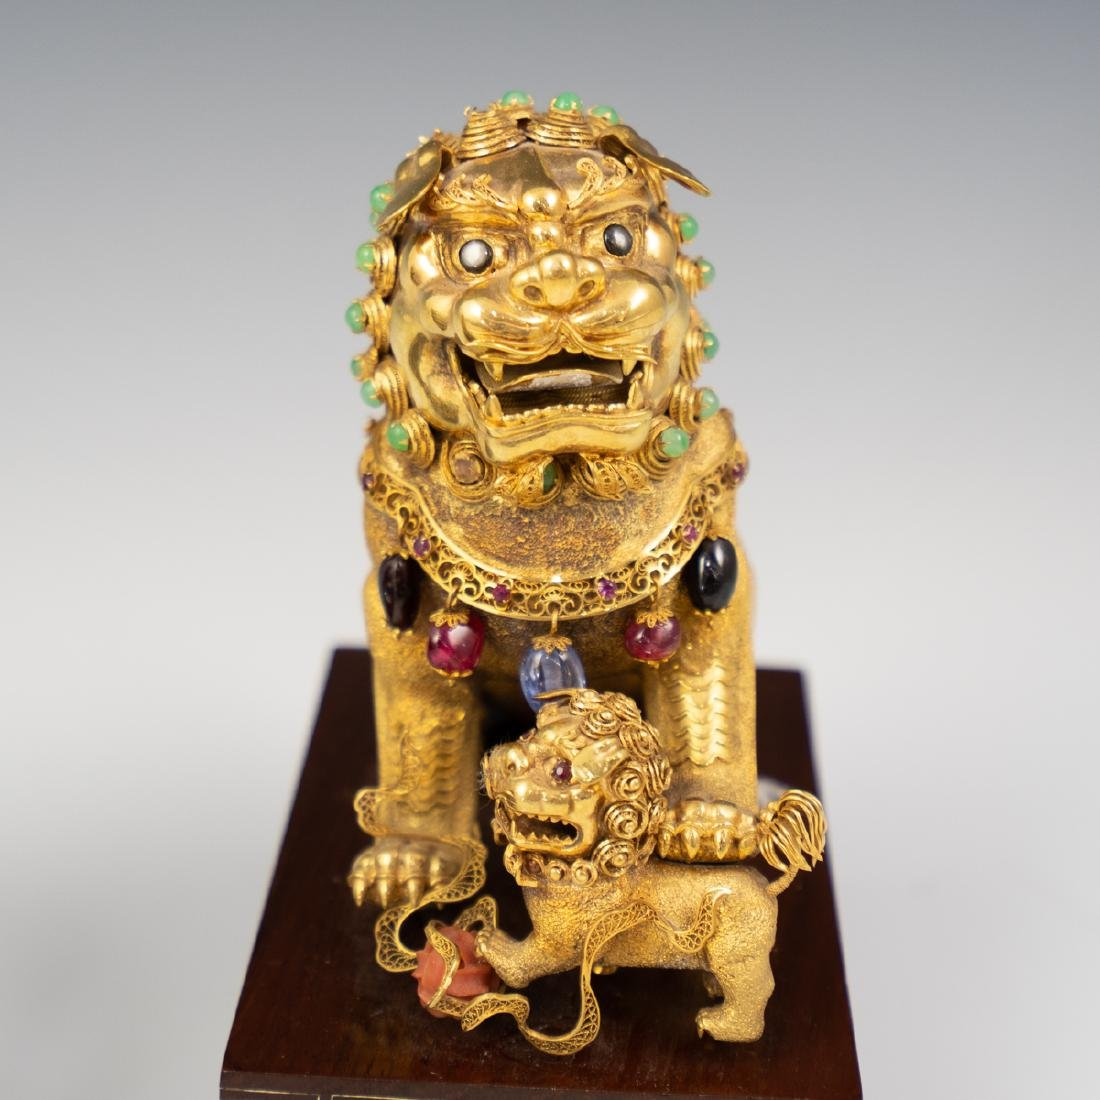 14K Solid Gold and Precious Stone Foo Dog - 5